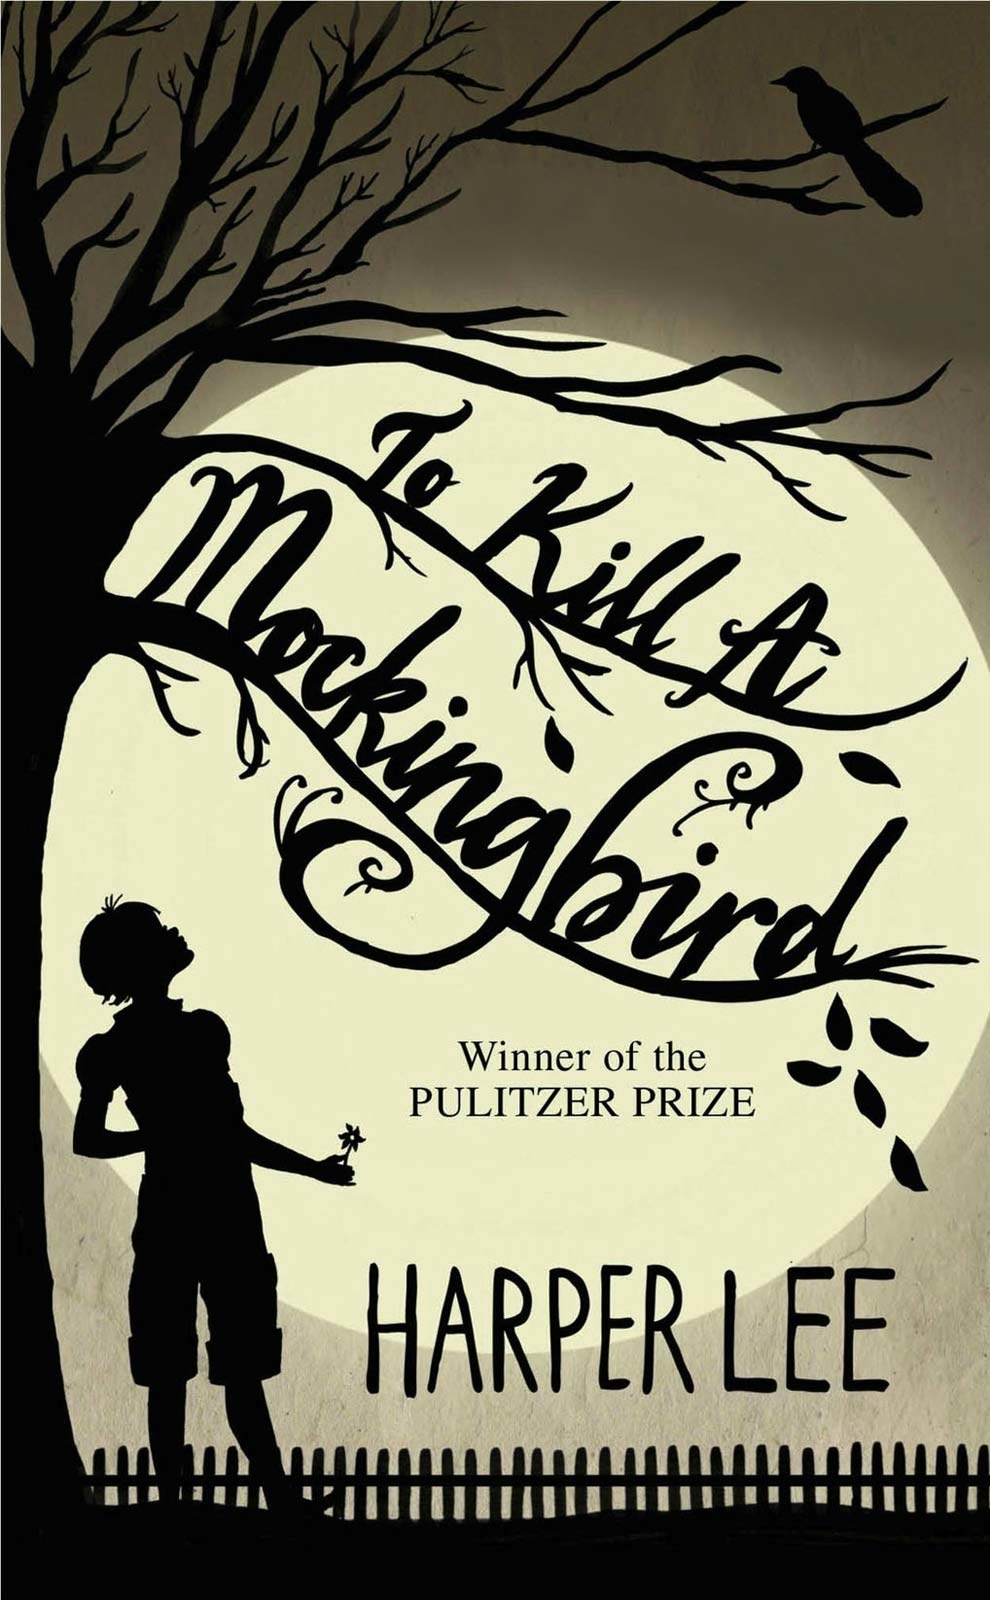 The silhouette of a girl standing under a tree on the cover of To Kill a Mockingbird